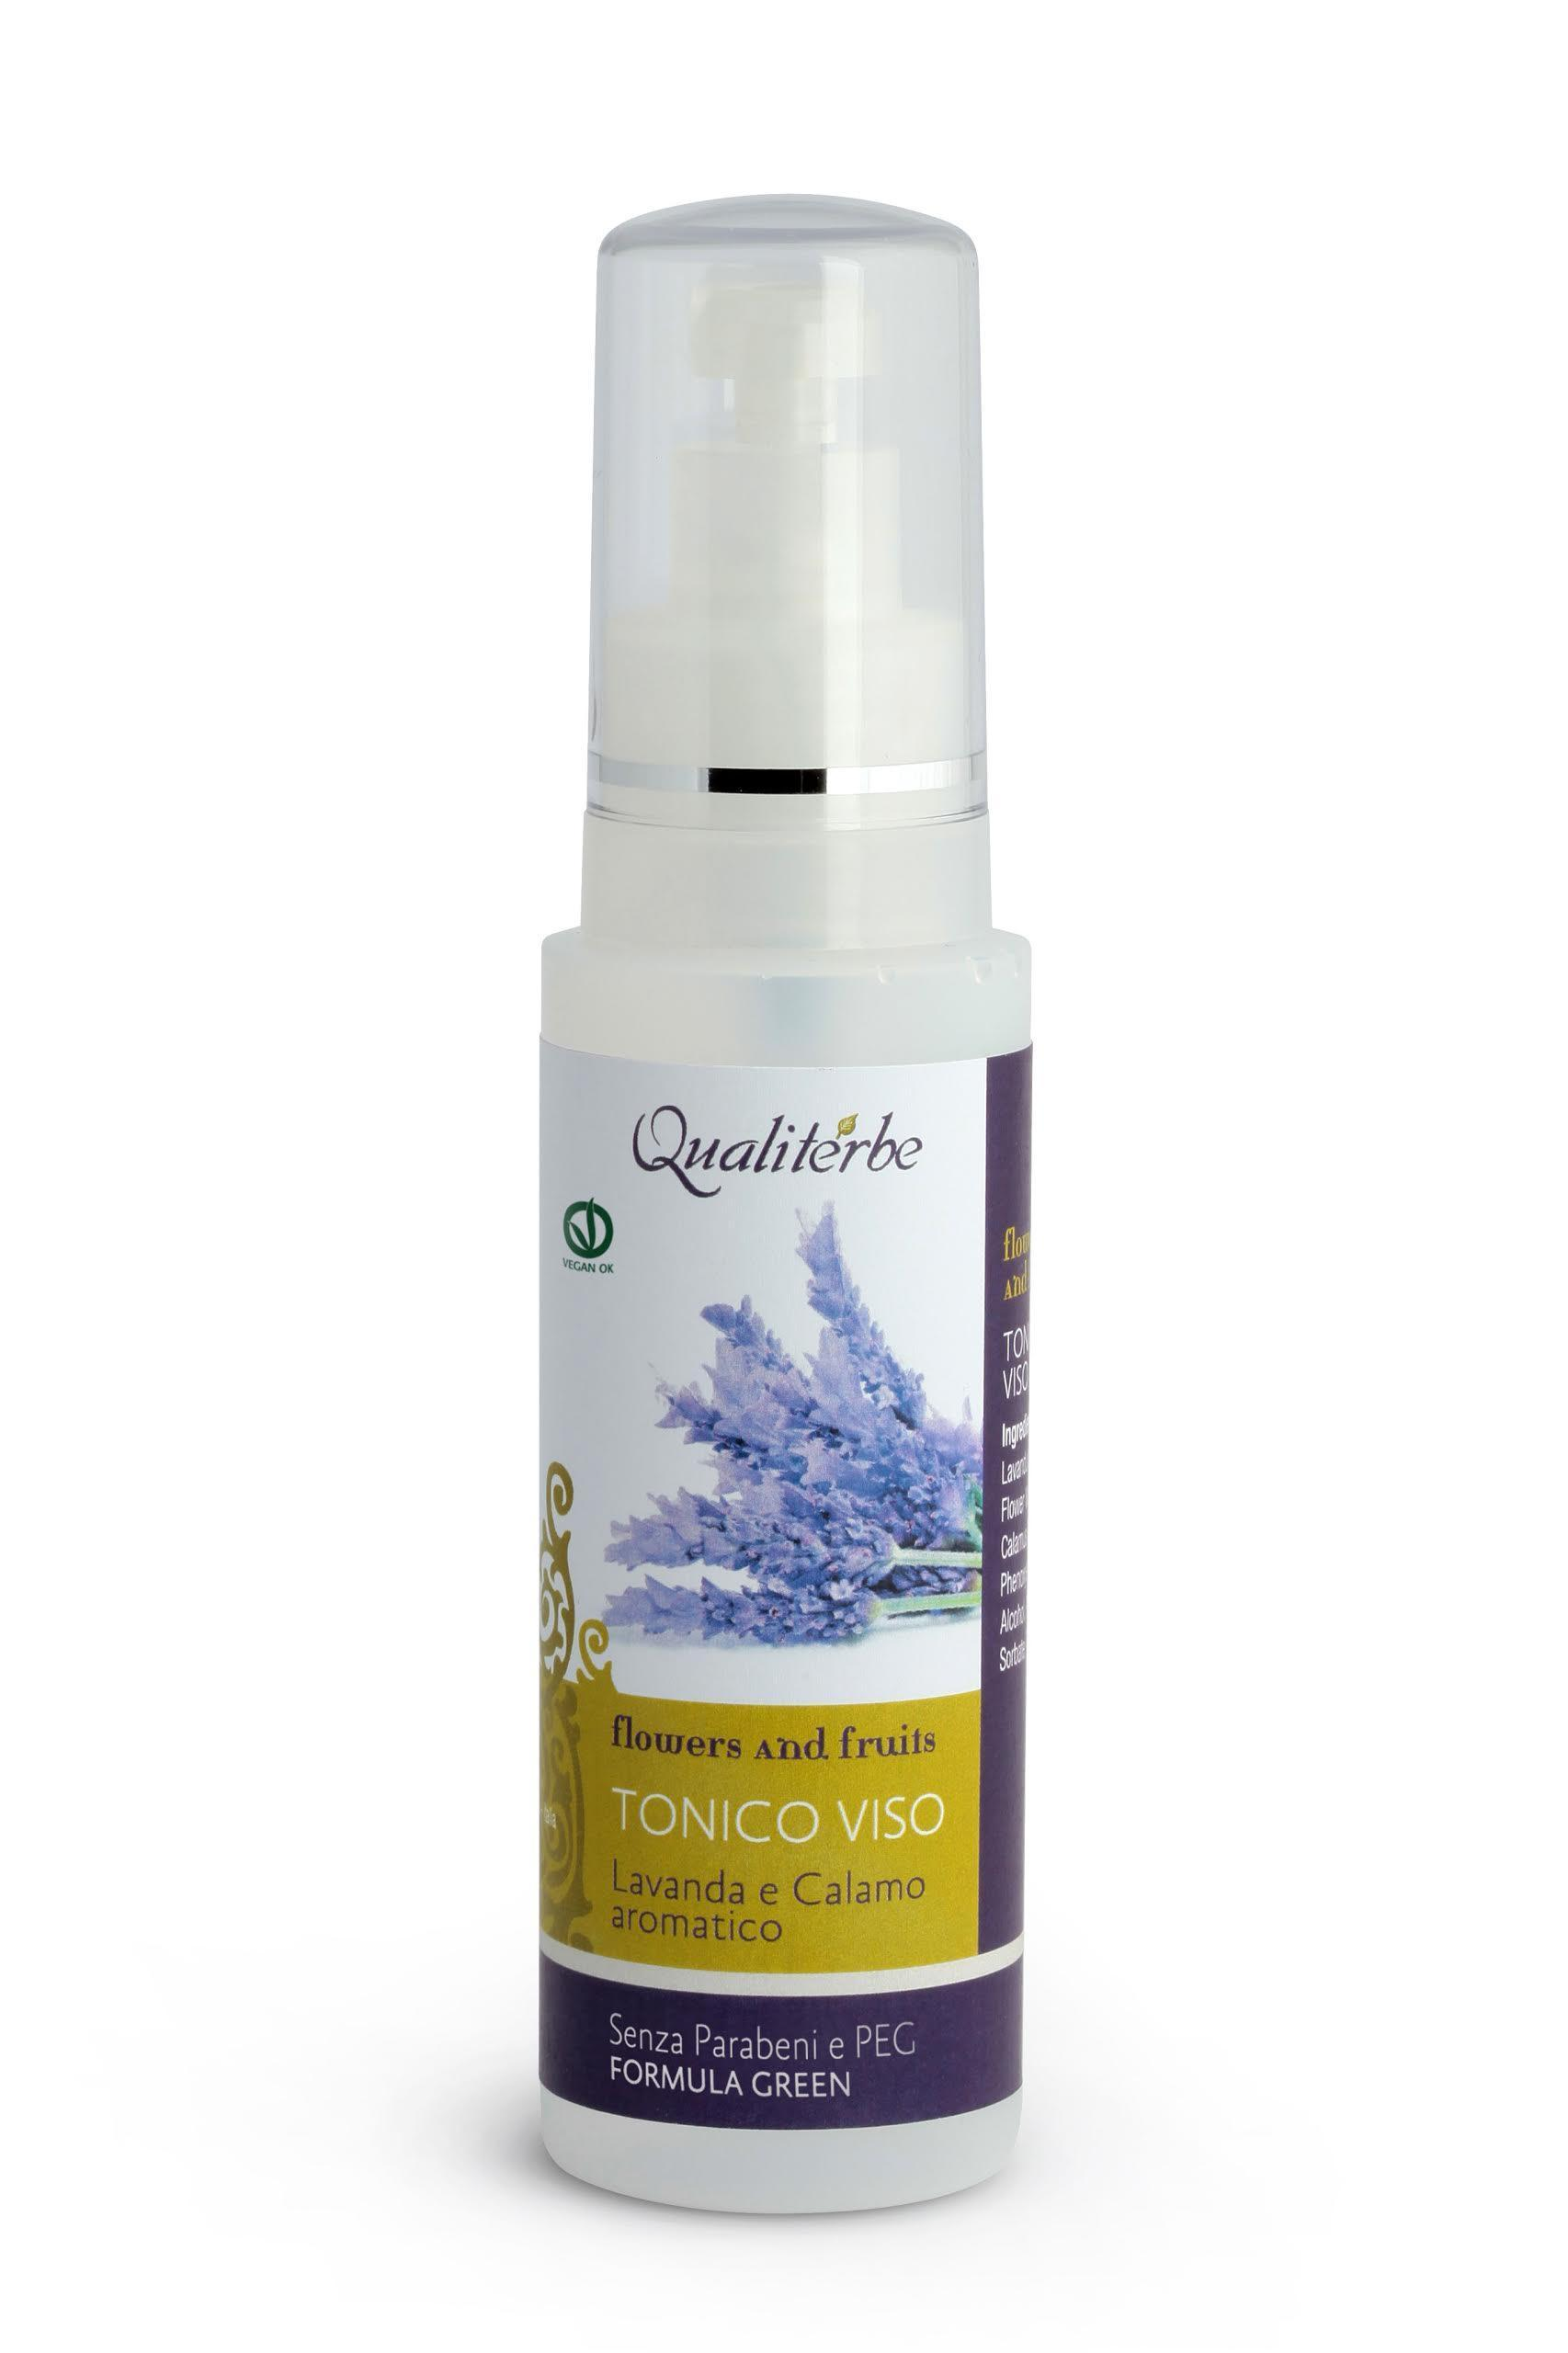 Tonico Viso 125 ml - Linea Flowers and Fruits - (Vegan ok, no Parabeni, no PEG)